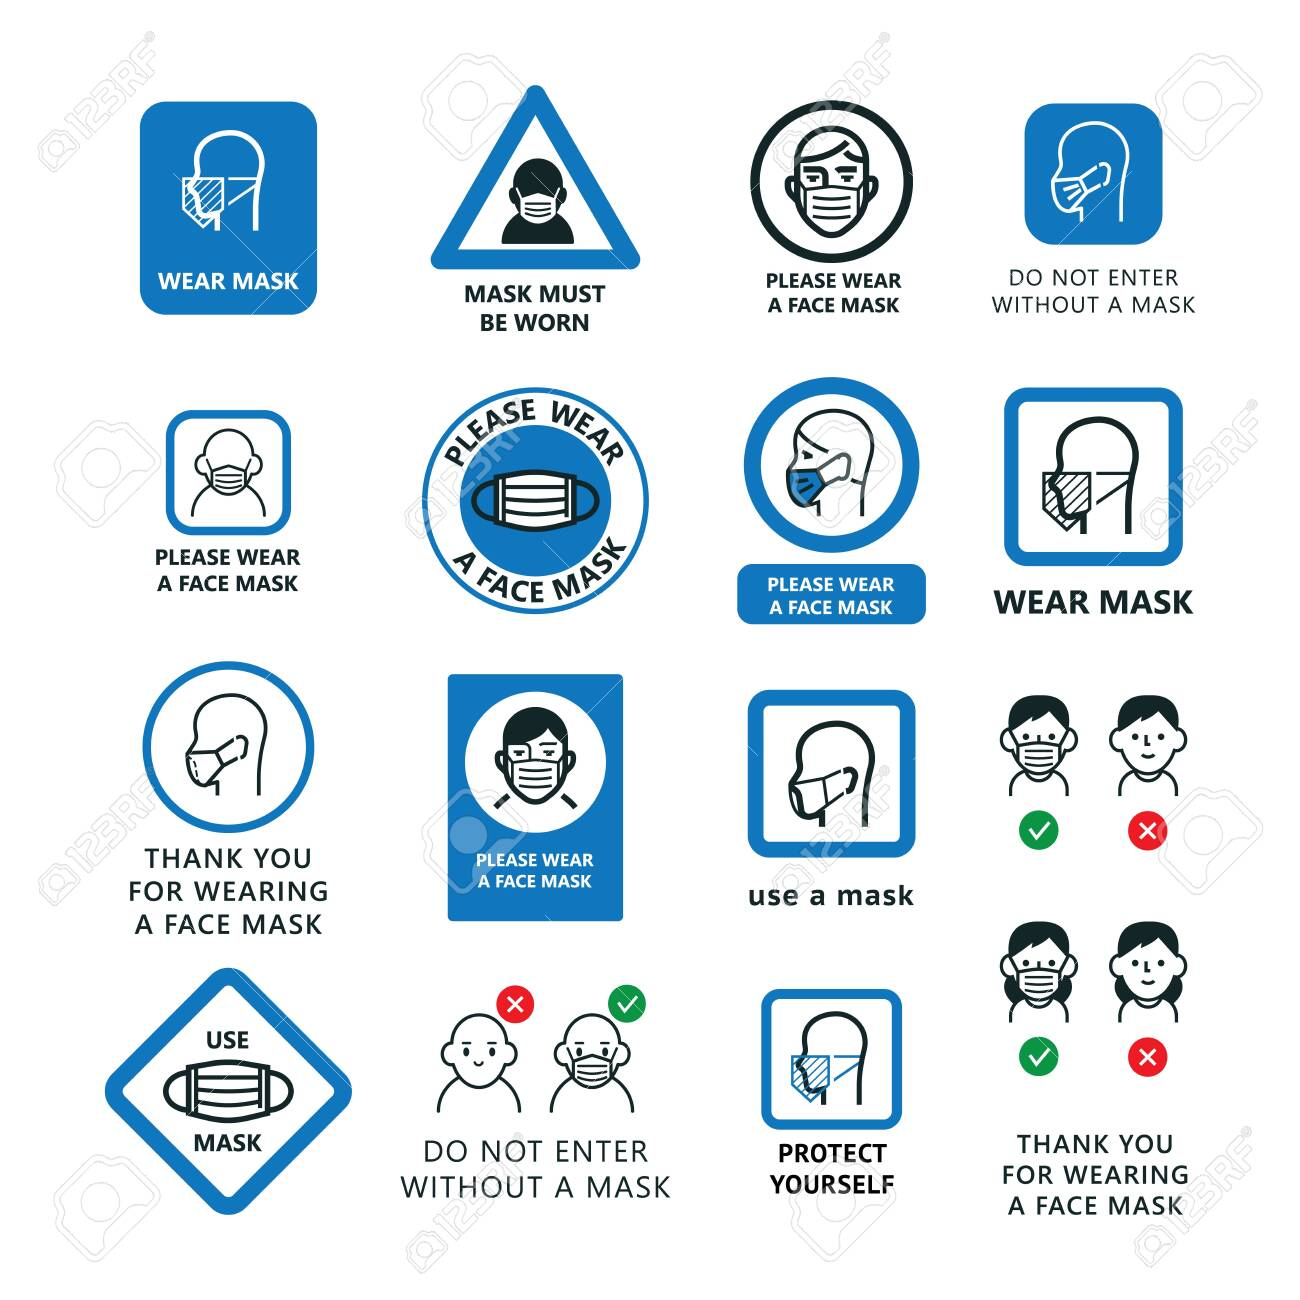 Warning signs to wear a face shield, mask. A large set of icons of people in masks, plates, images indicating attention. - 148200322